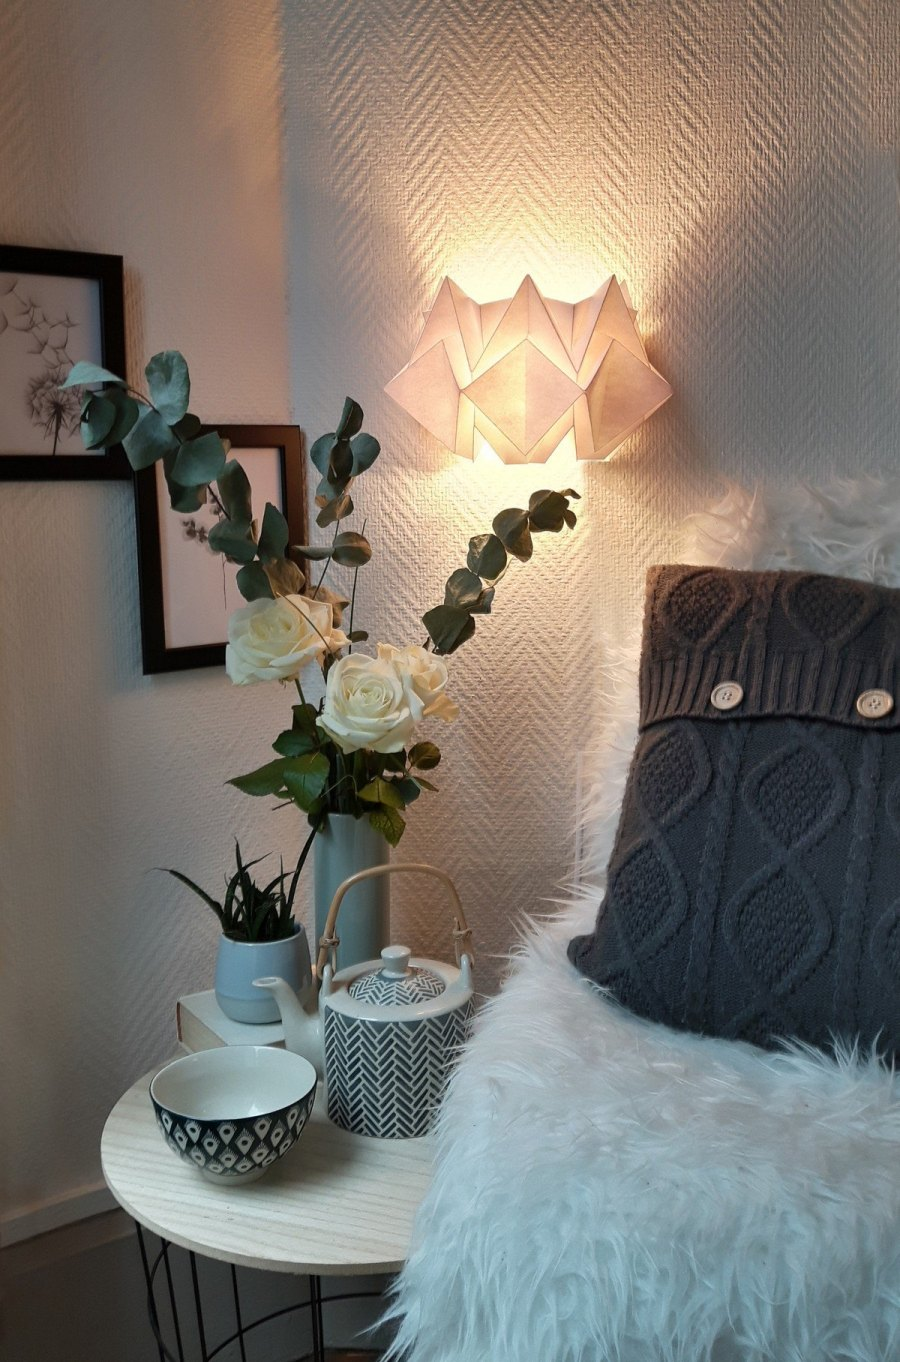 They usually also have a nice warm glow around them and this is one of the reasons why they're so great for bedrooms.